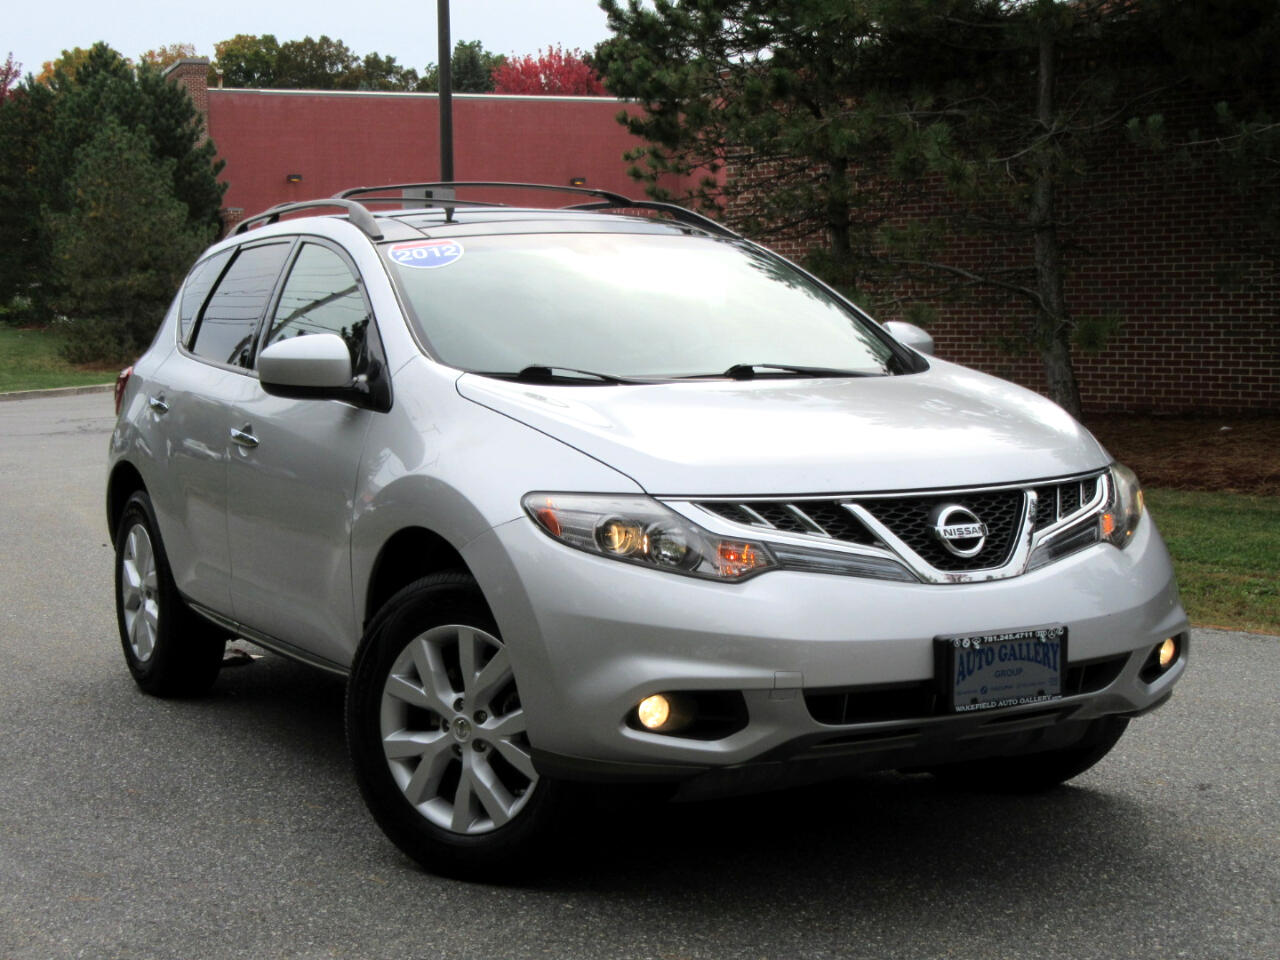 2012 Nissan Murano AWD 4dr SL Leather Navigation Backup Camera